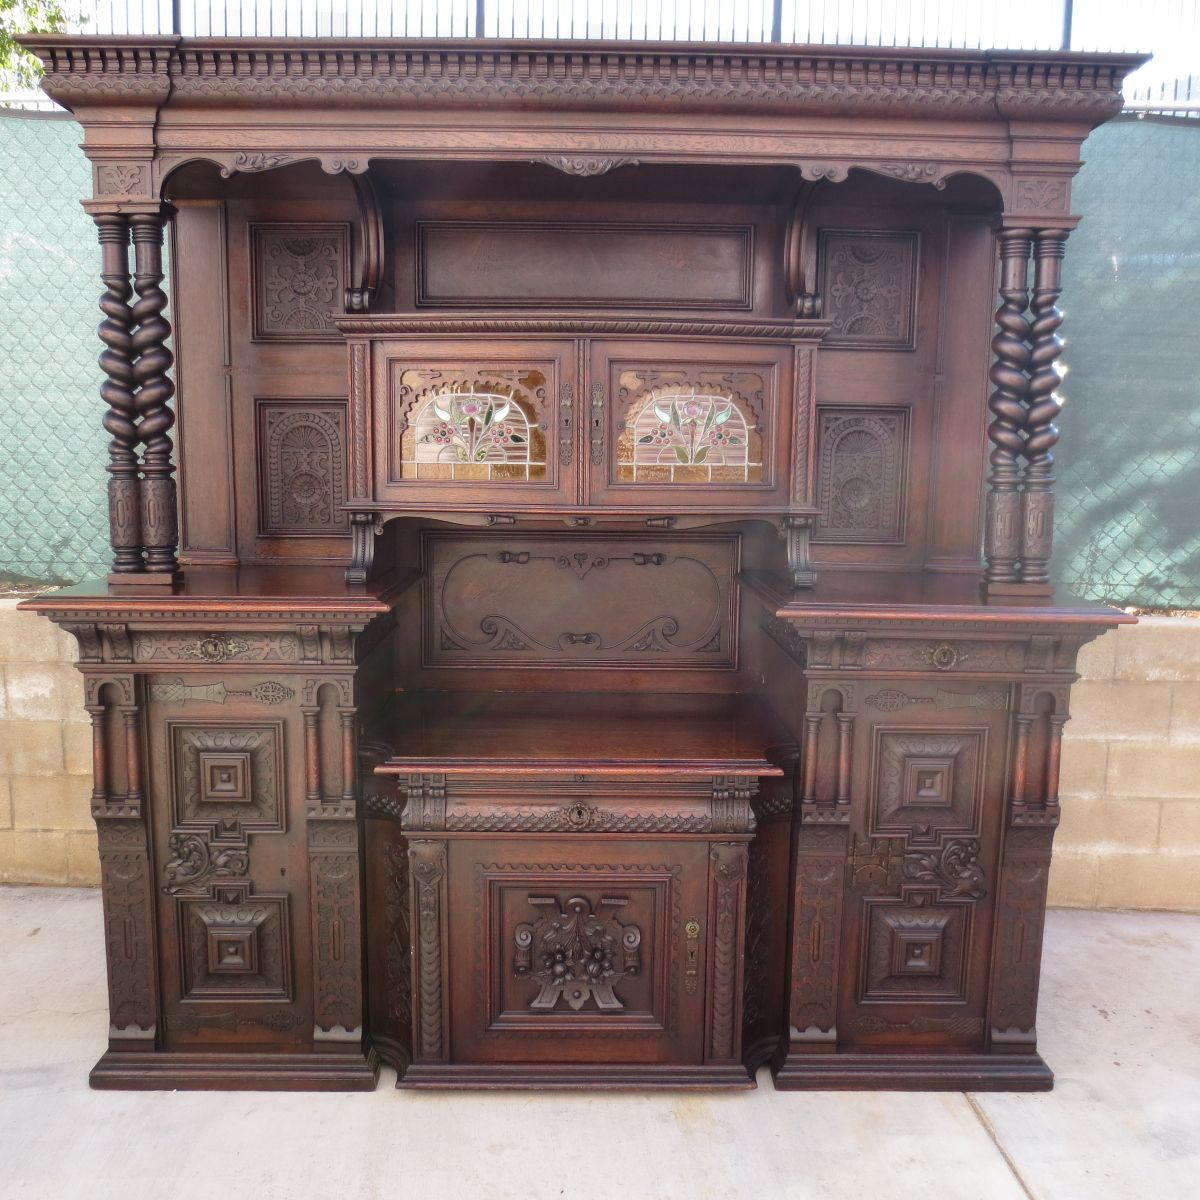 German Antique Cabinet Antique Back Bar Antique Hutch Antique Server Antique  Furniture - German Antique Cabinet Antique Back Bar Antique Hutch Antique